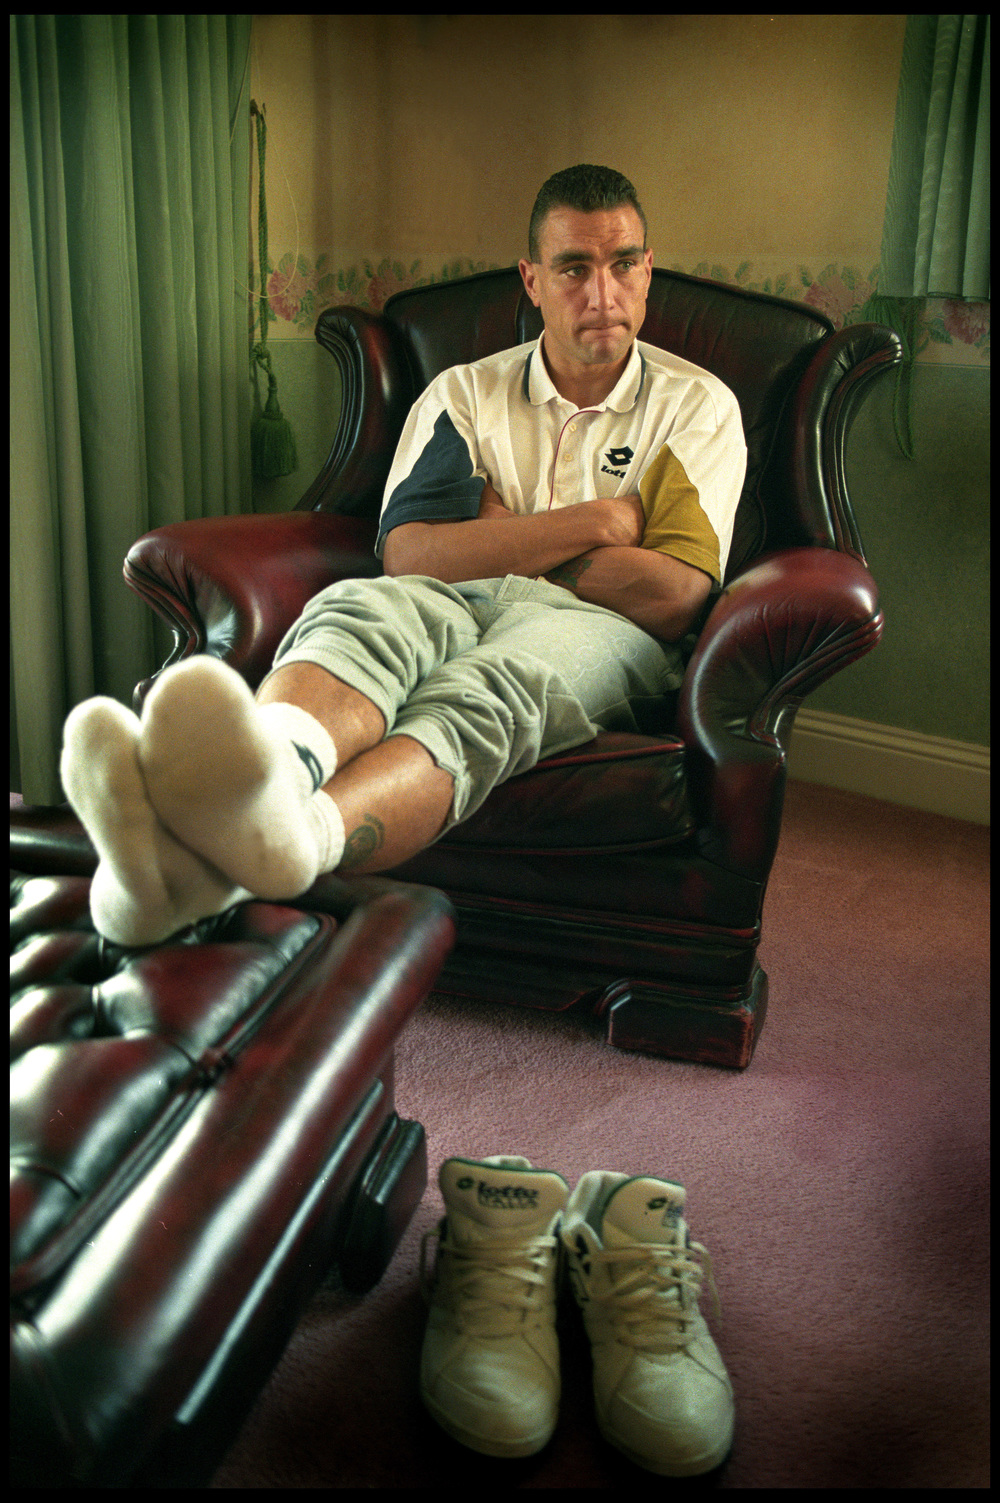 Vinnie Jones, actor, ex-footballer